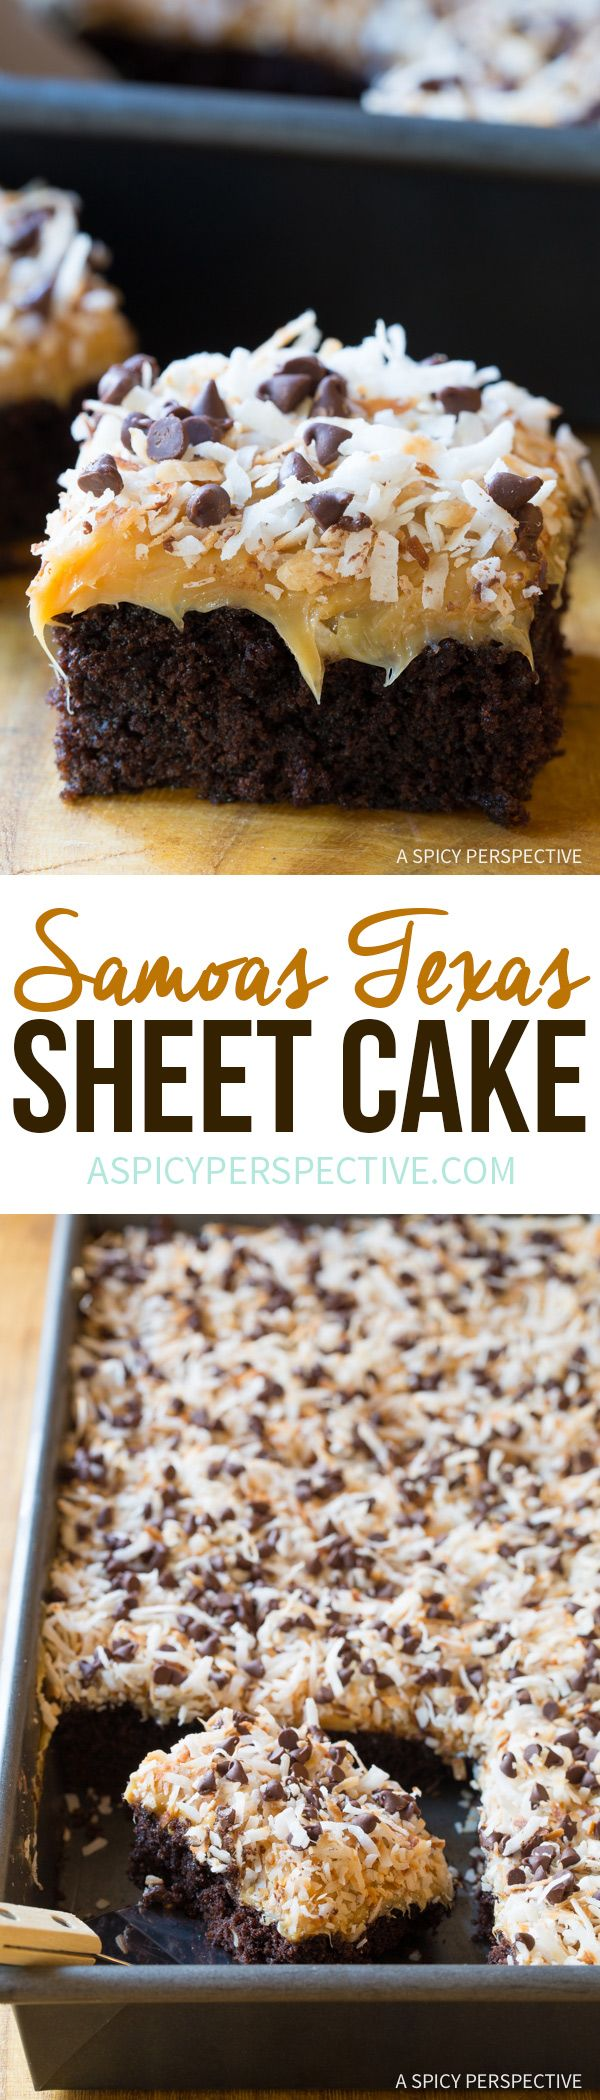 We've got a chunky-topped Samoas Texas Sheet Cake recipe for you today. The girl scouts would approve! Last week I shared a decadent Salted…